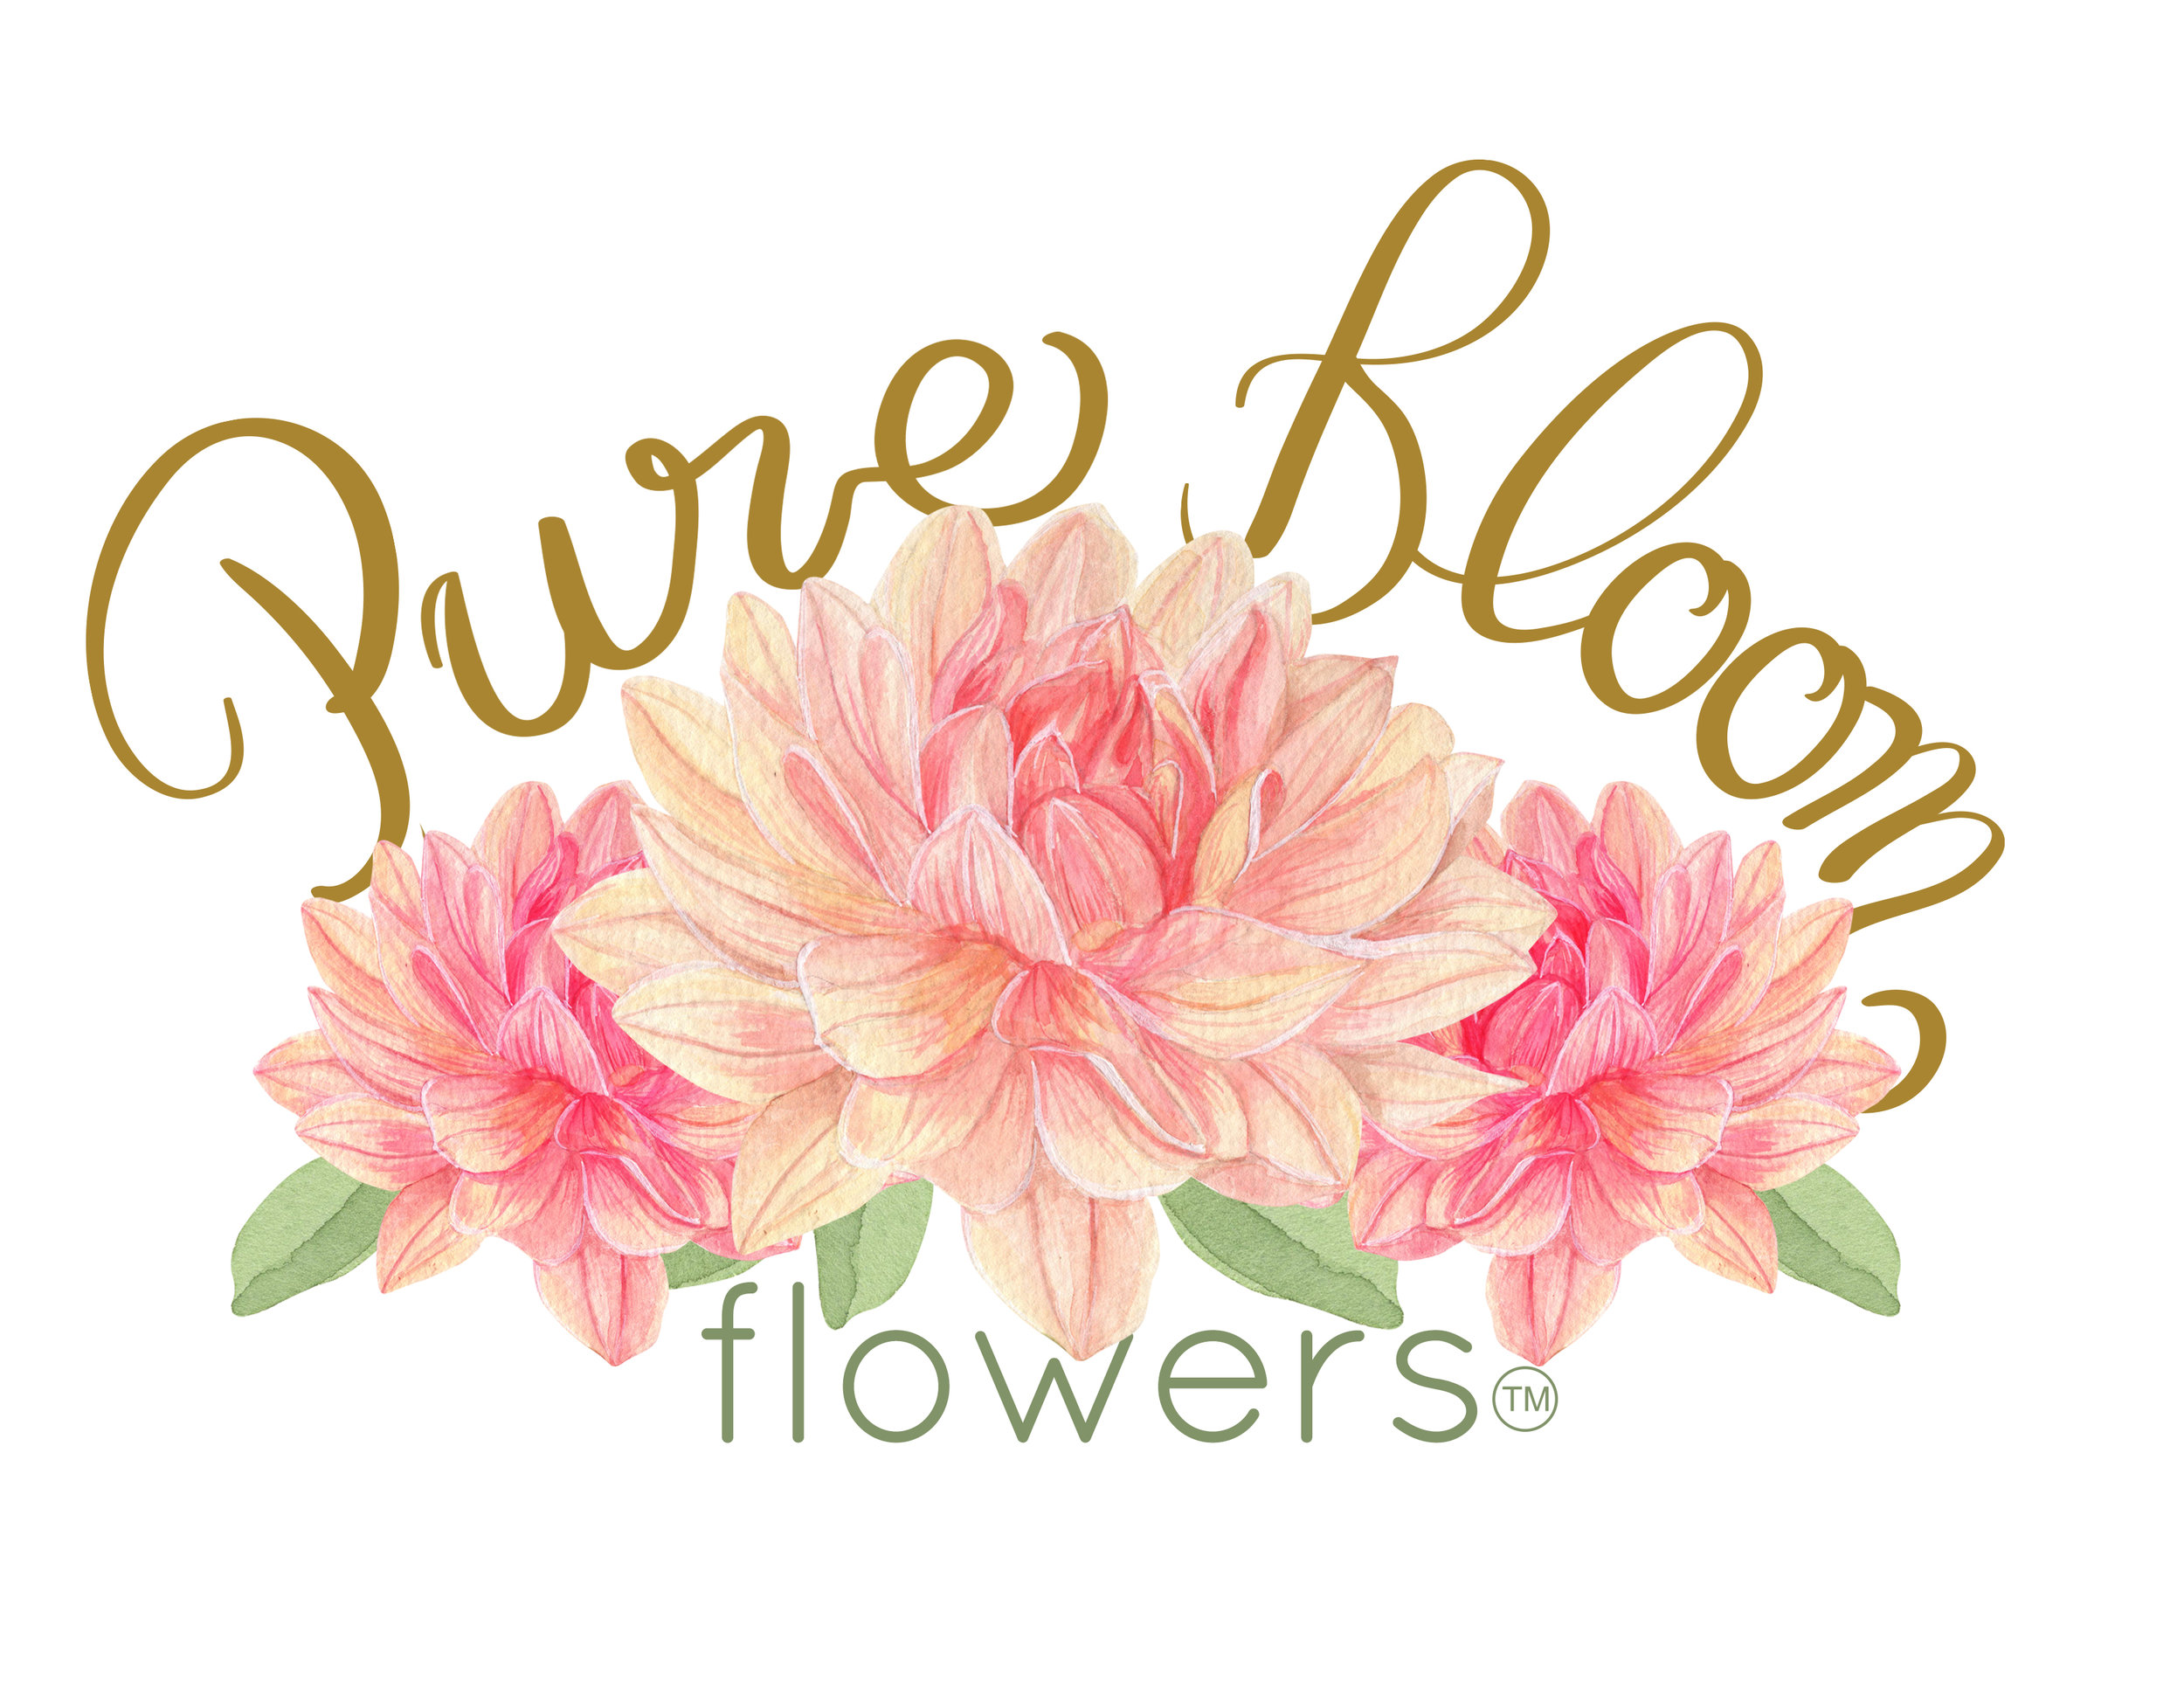 - PURE BLOOM FLOWERS - Lovingly designing and growing fresh flowers for Chicago Northern Suburbs